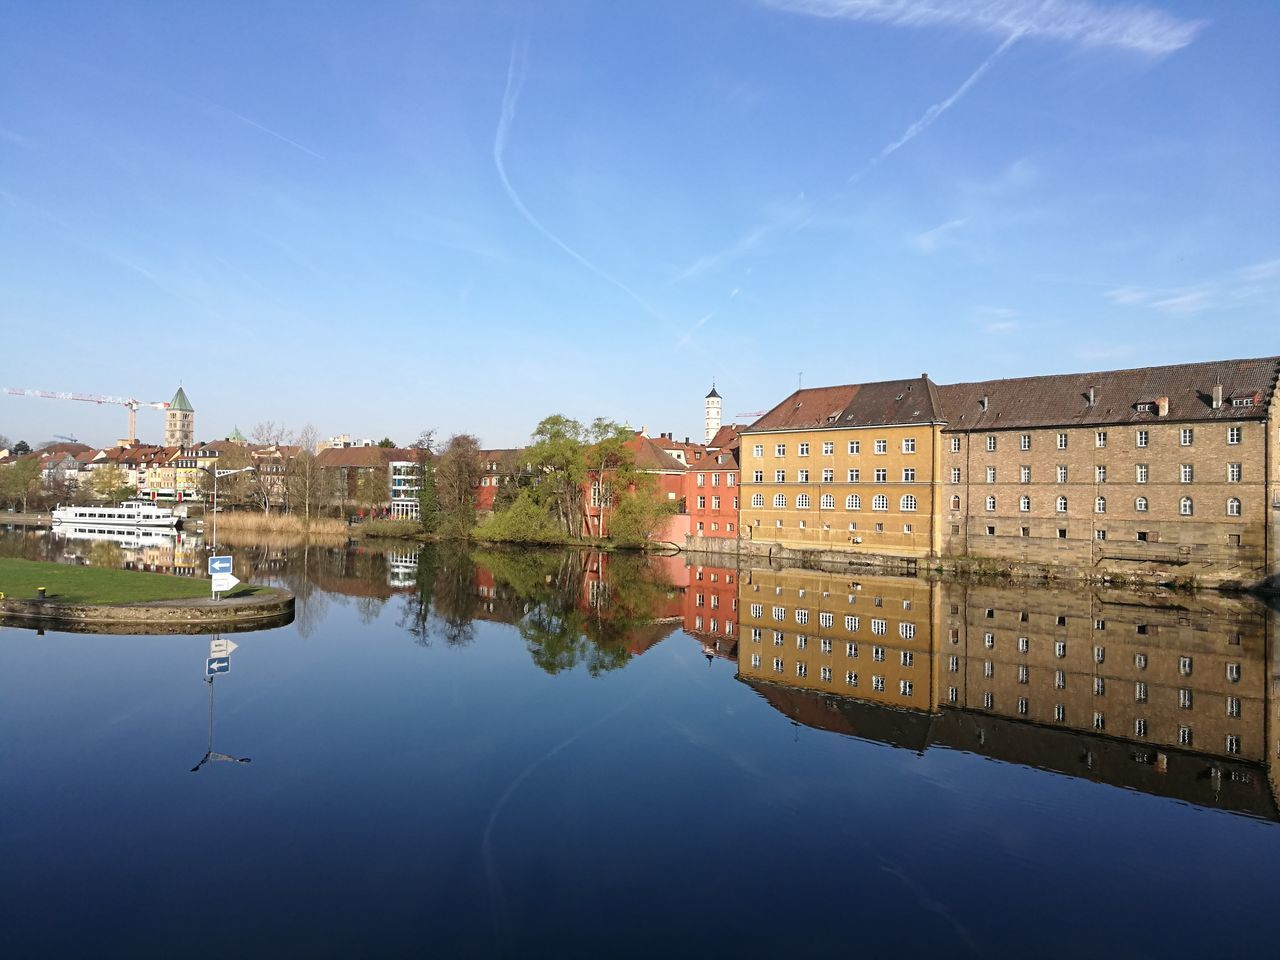 Reflection Water Schweinfurt Main Beauty In Nature History Built Structure Architecture Travel Destinations Scenics City